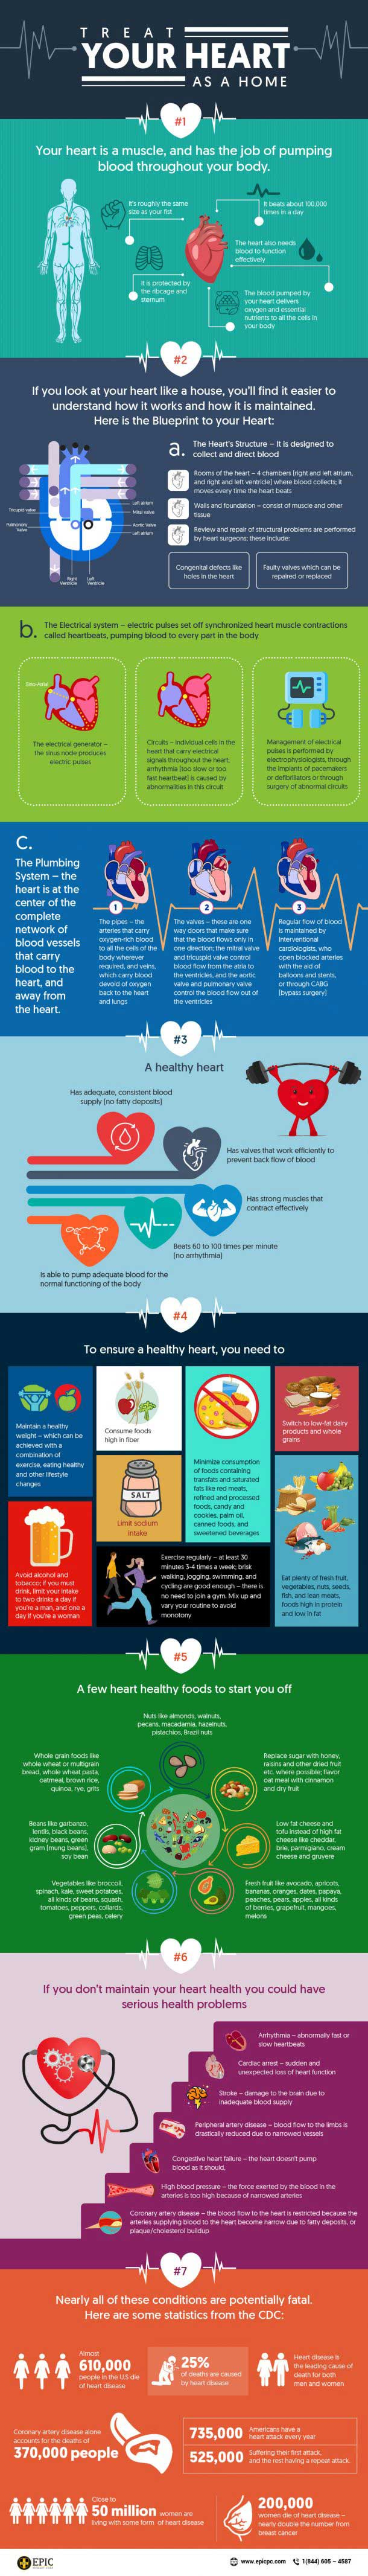 american-heart-month-know-about-heart